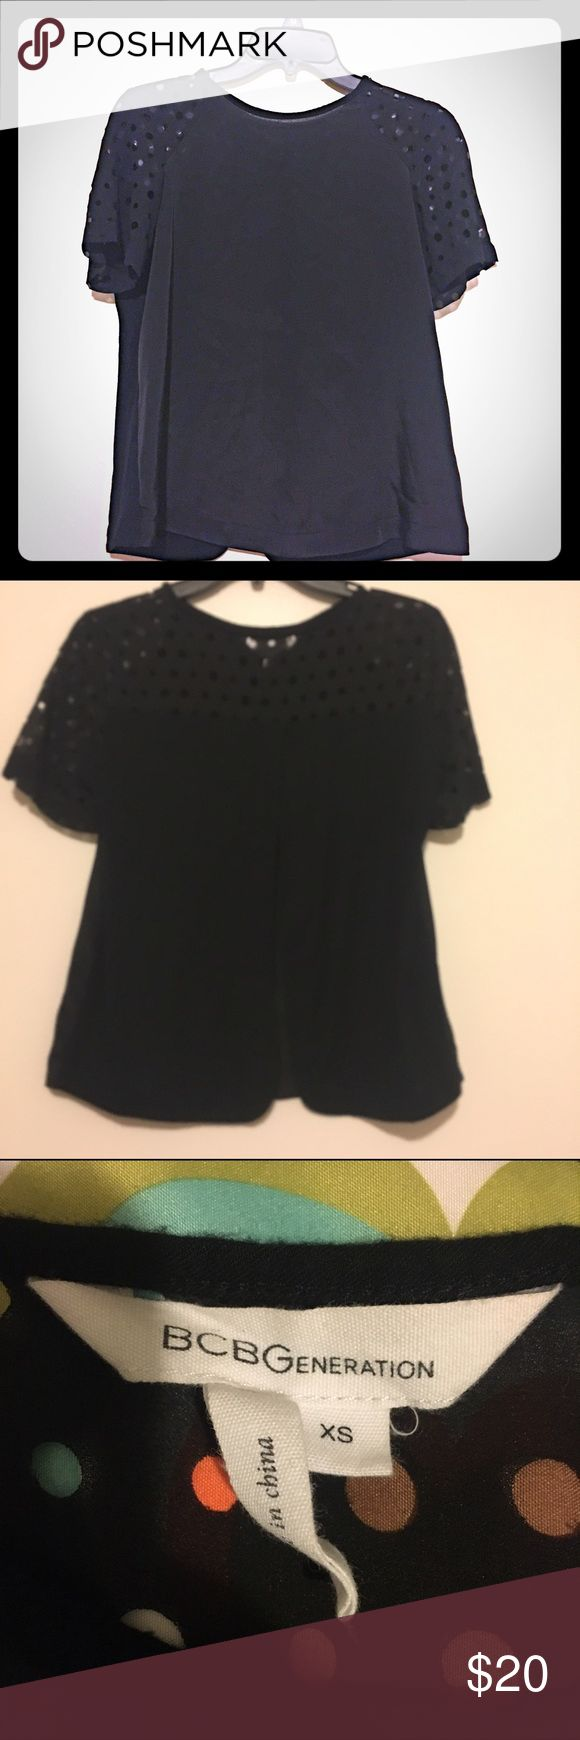 BCBGENERATION top. Black blouse top. Size XS. Excellent condition. No damage or stain. BCBGeneration Tops Blouses